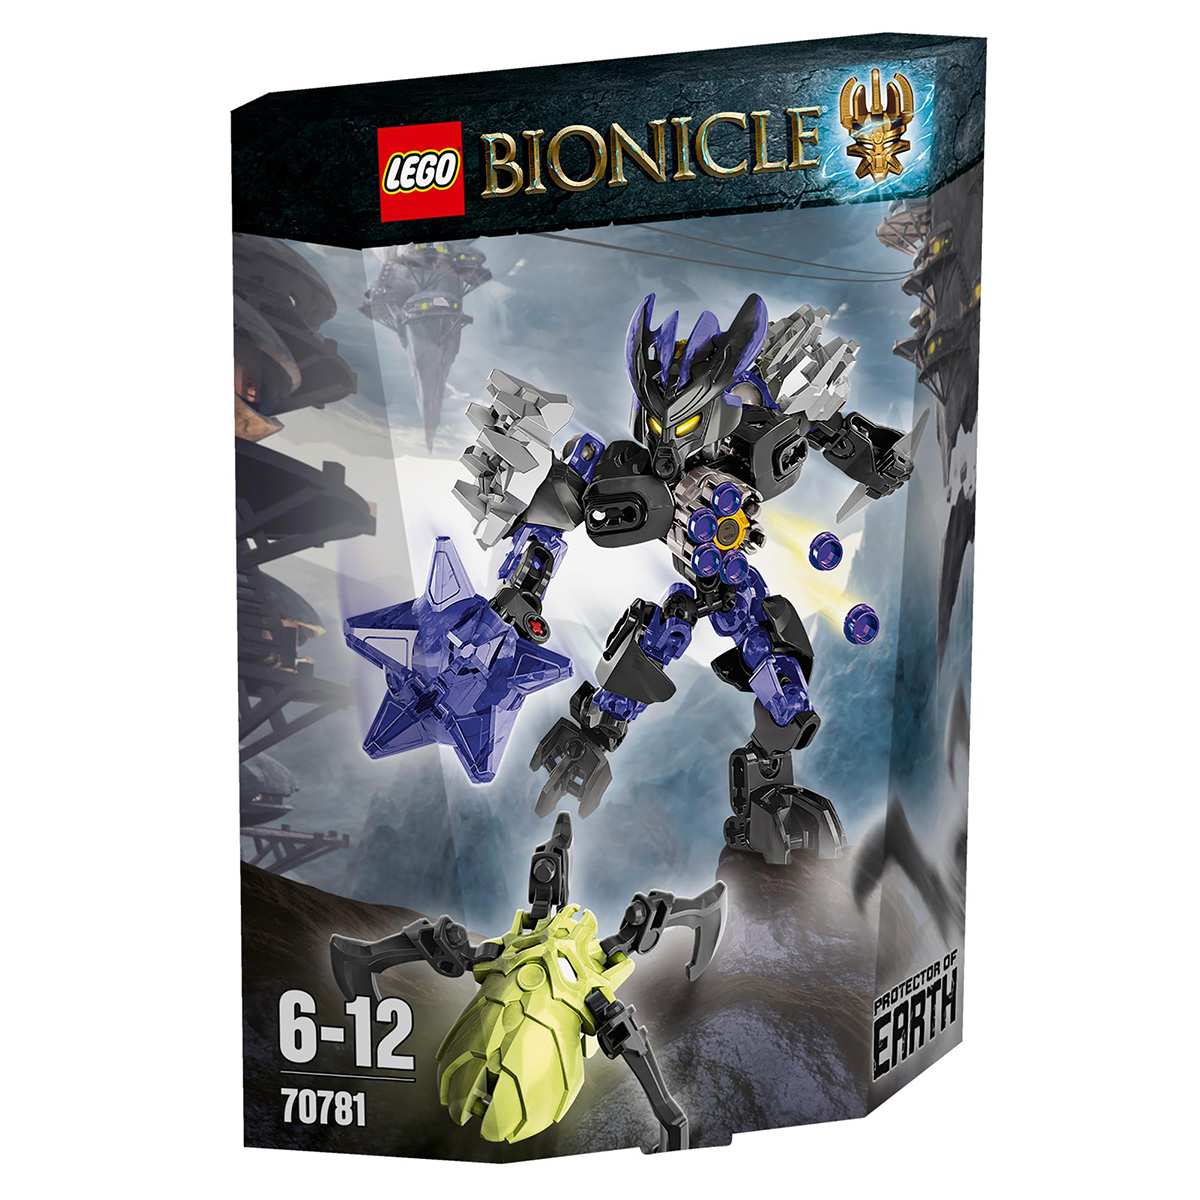 Lego Bionicle 70781 - Ho ve dat